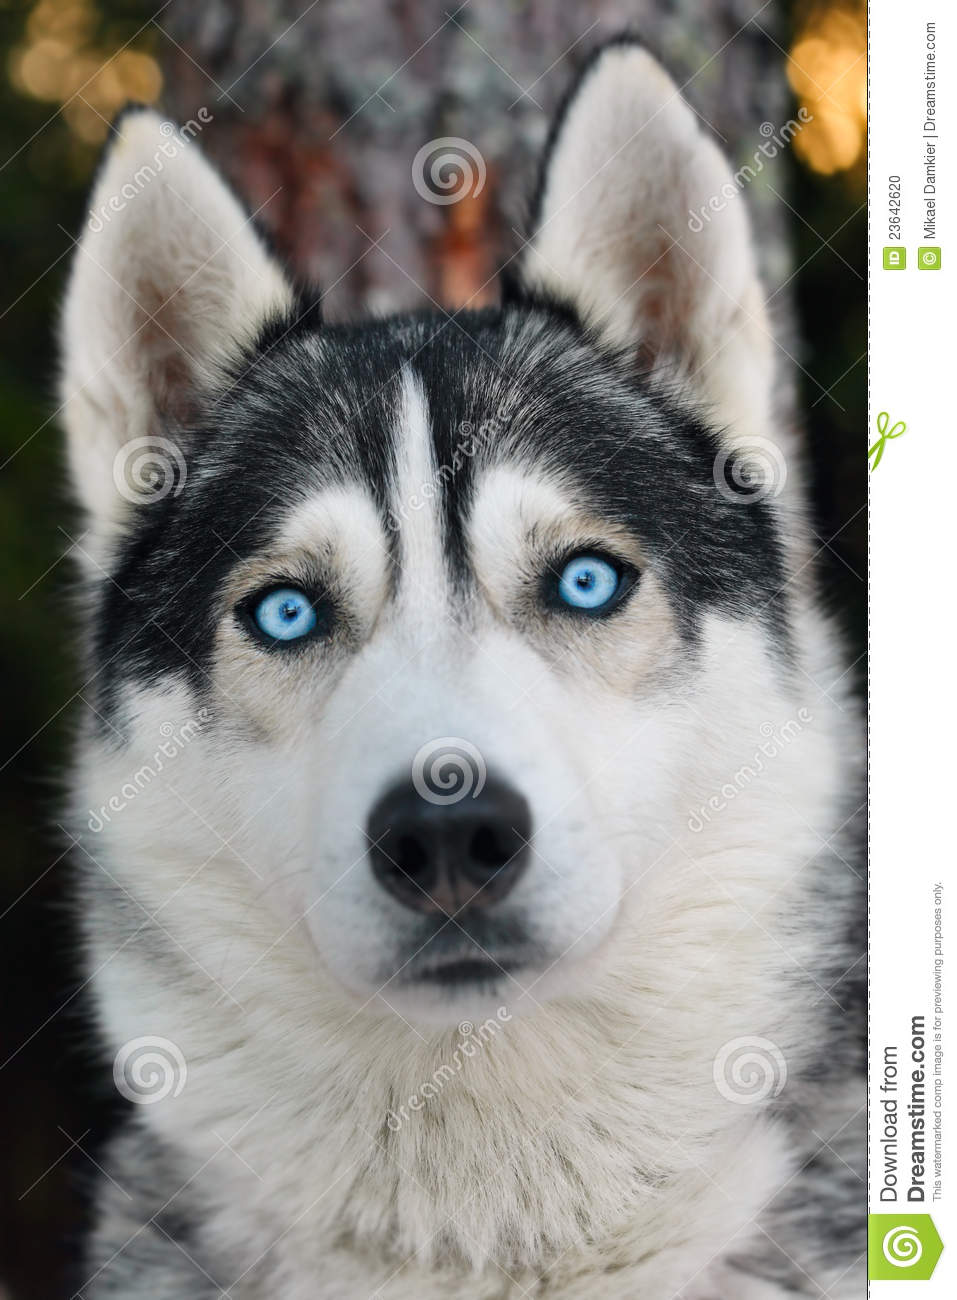 Close up photo of a Husky dog in the forest.